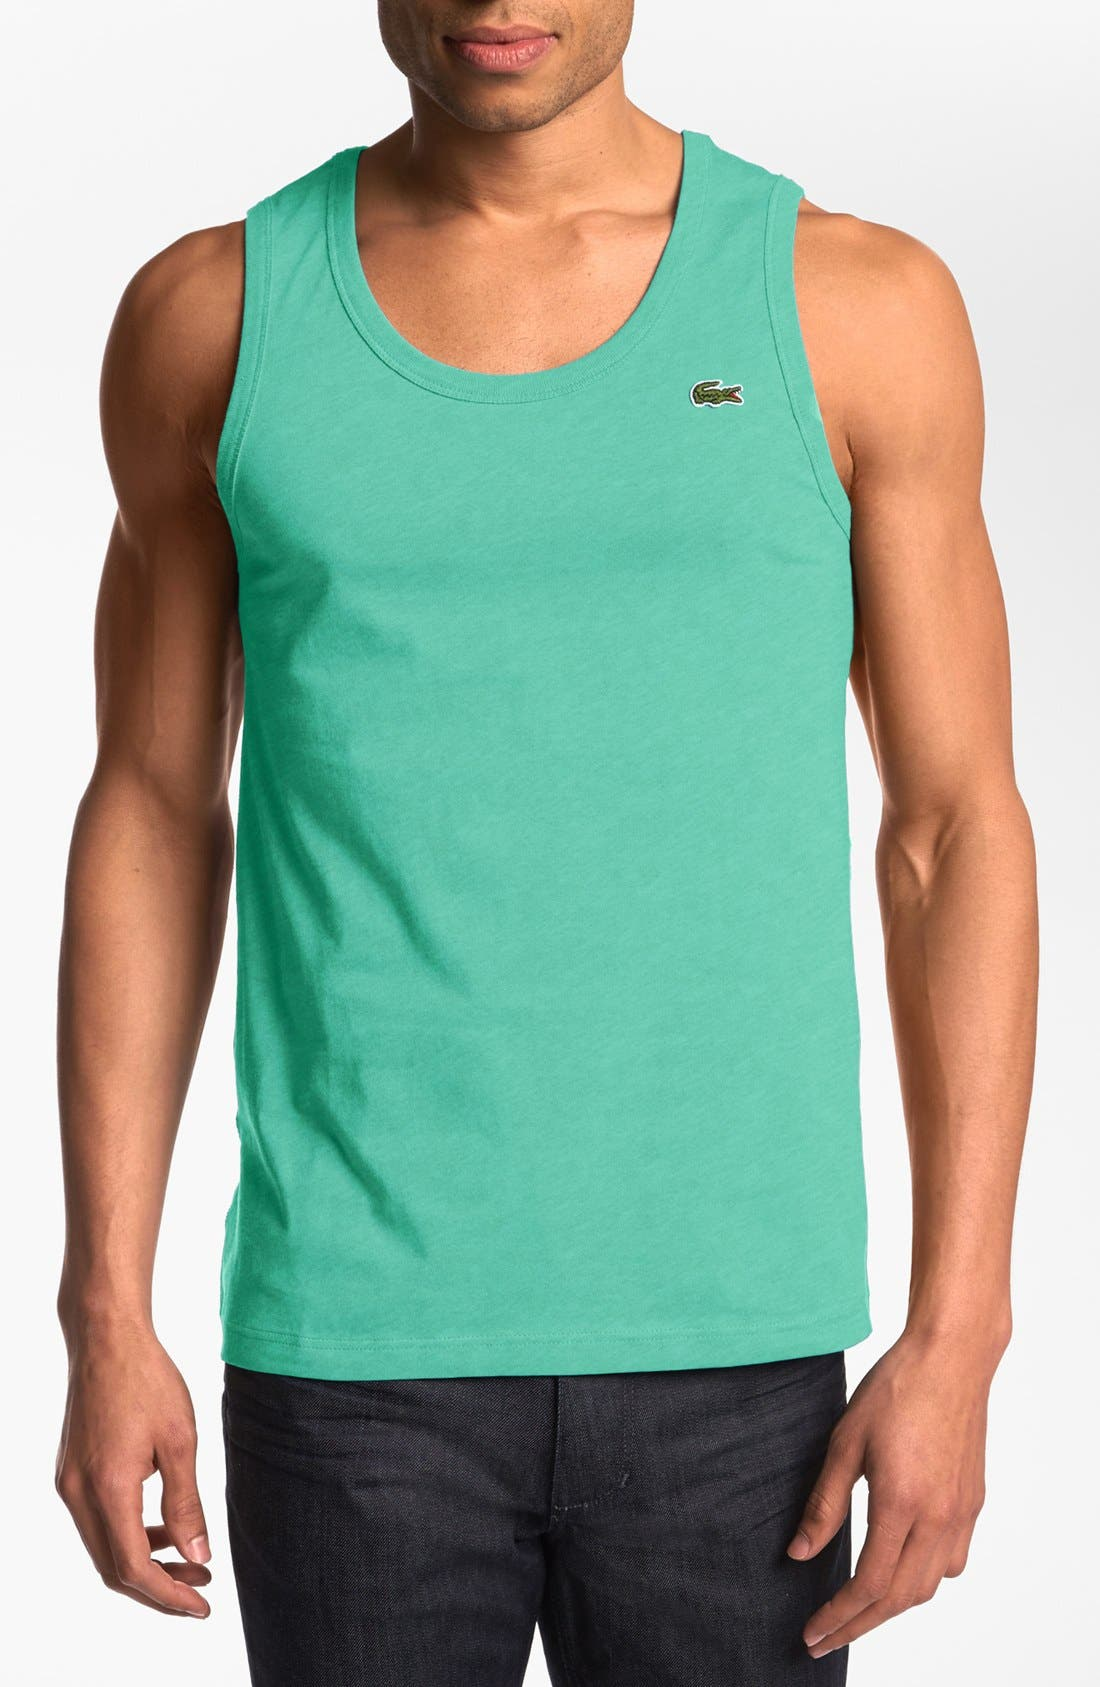 Alternate Image 1 Selected - Lacoste Tank Top